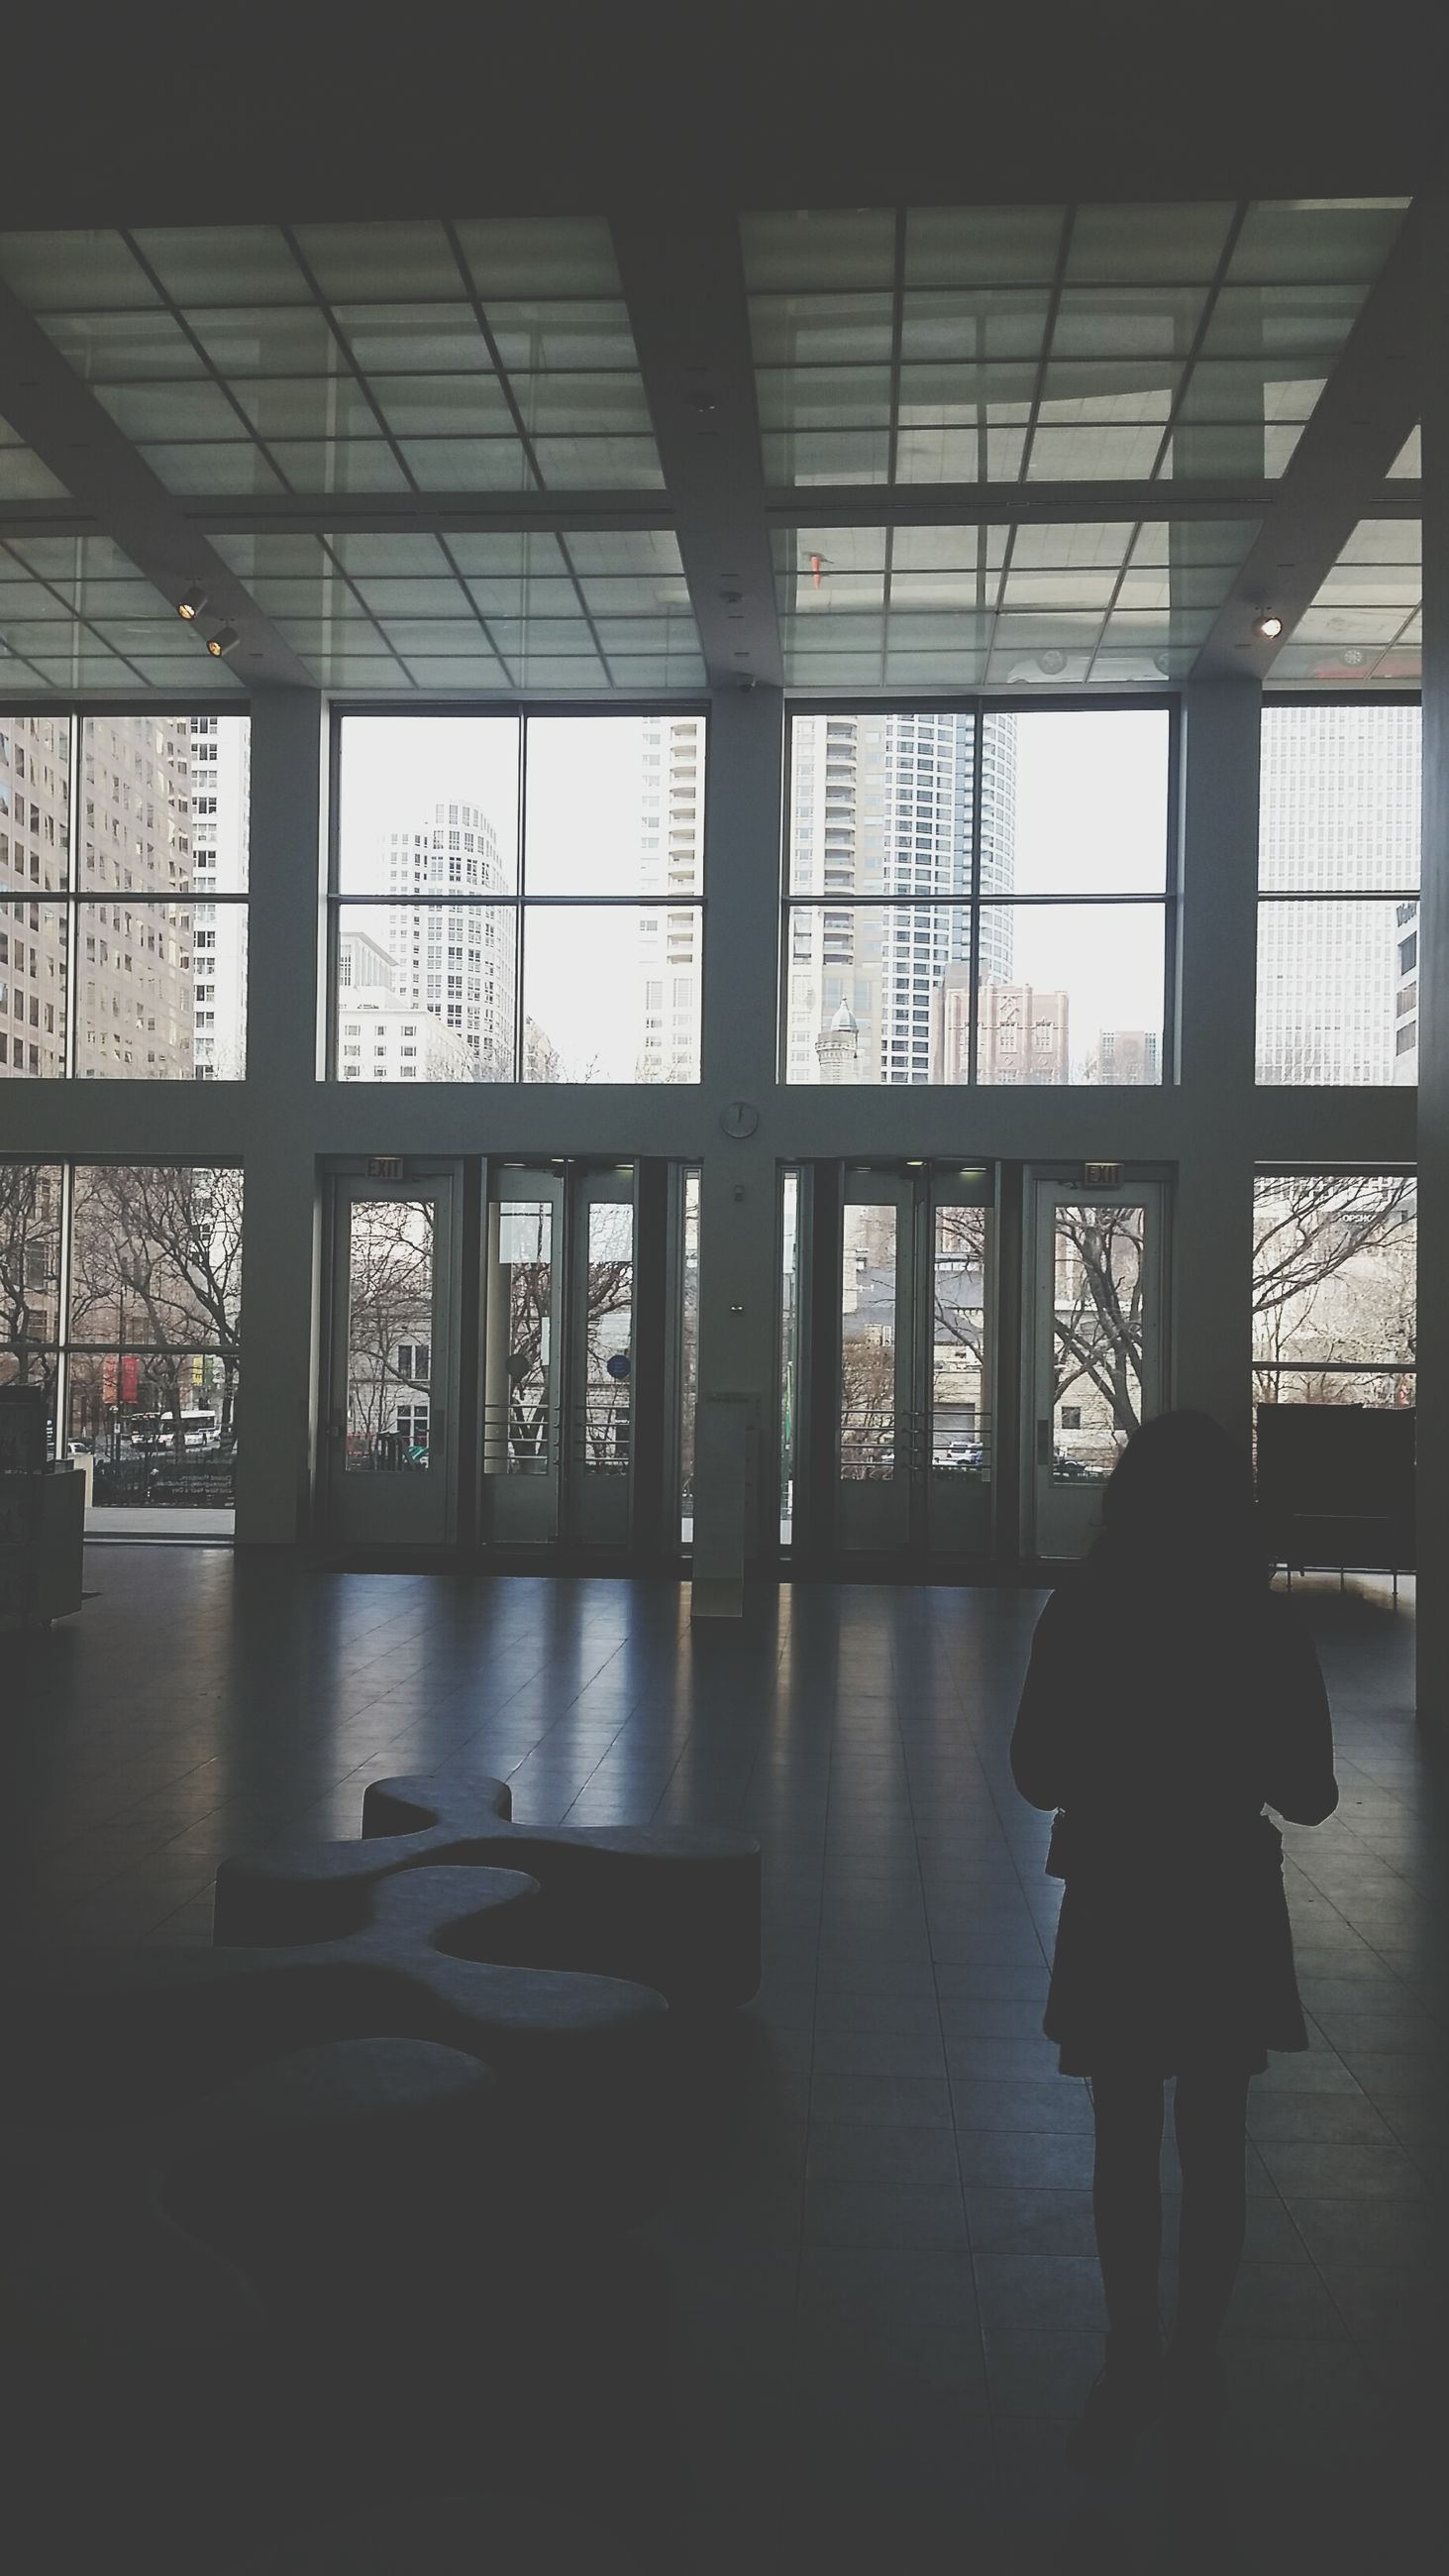 indoors, window, lifestyles, glass - material, men, architecture, built structure, full length, flooring, leisure activity, transparent, person, silhouette, ceiling, rear view, standing, walking, reflection